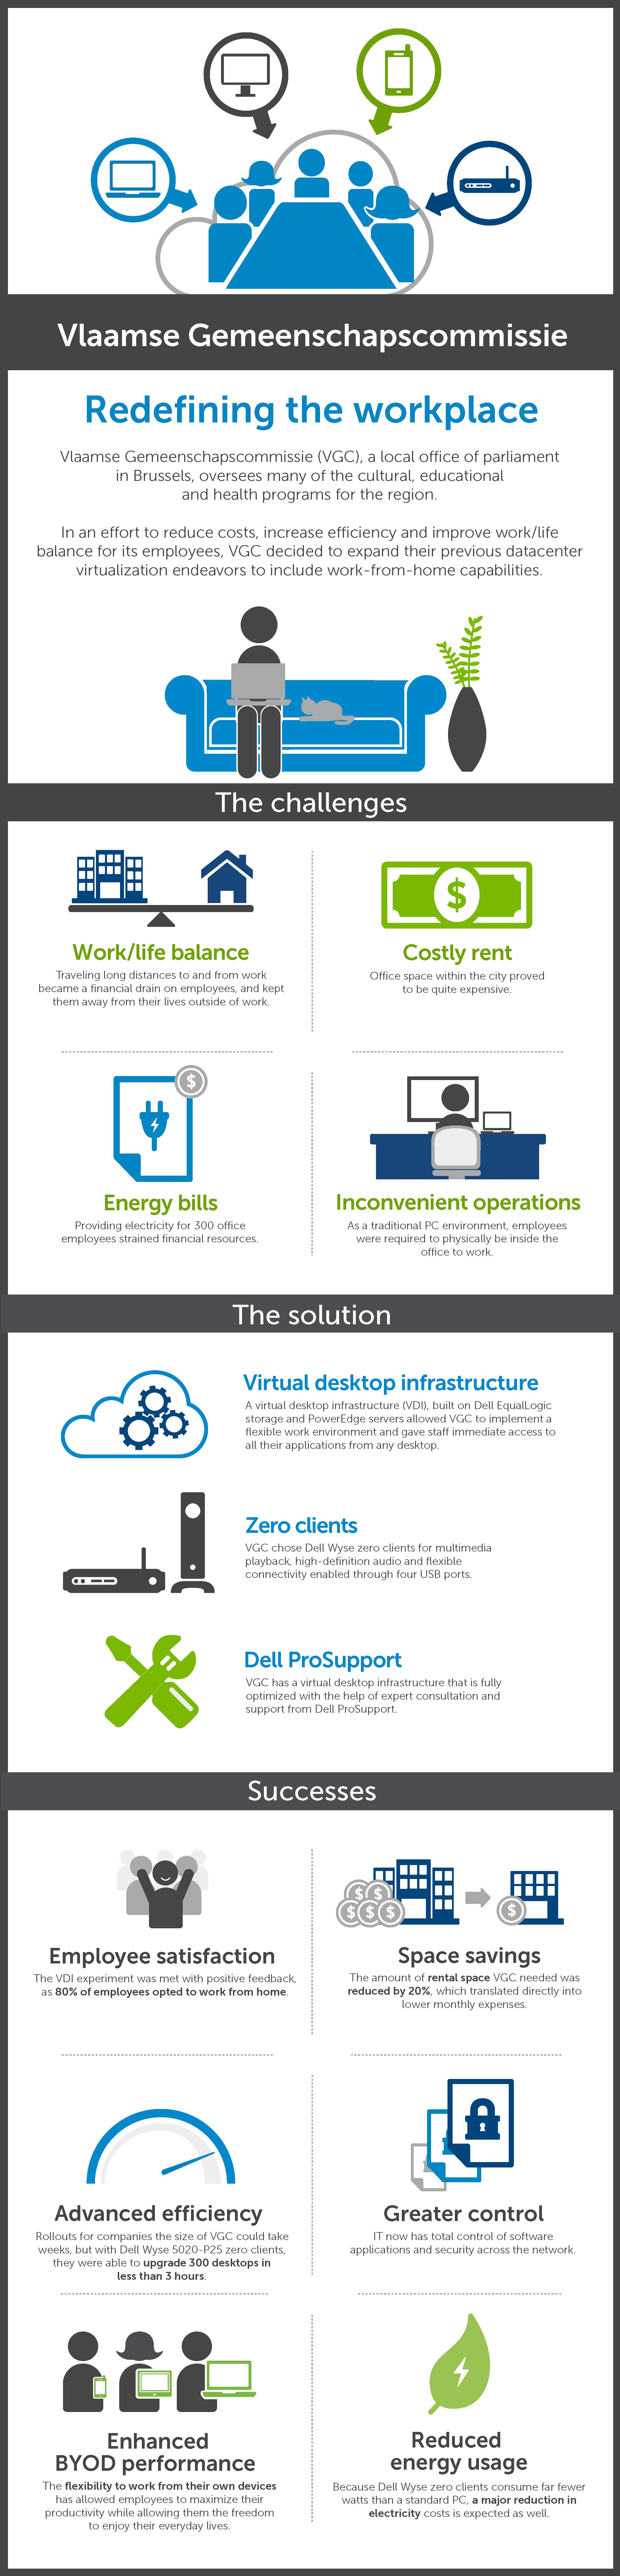 0251-infographic-VCG-consolidated-Final